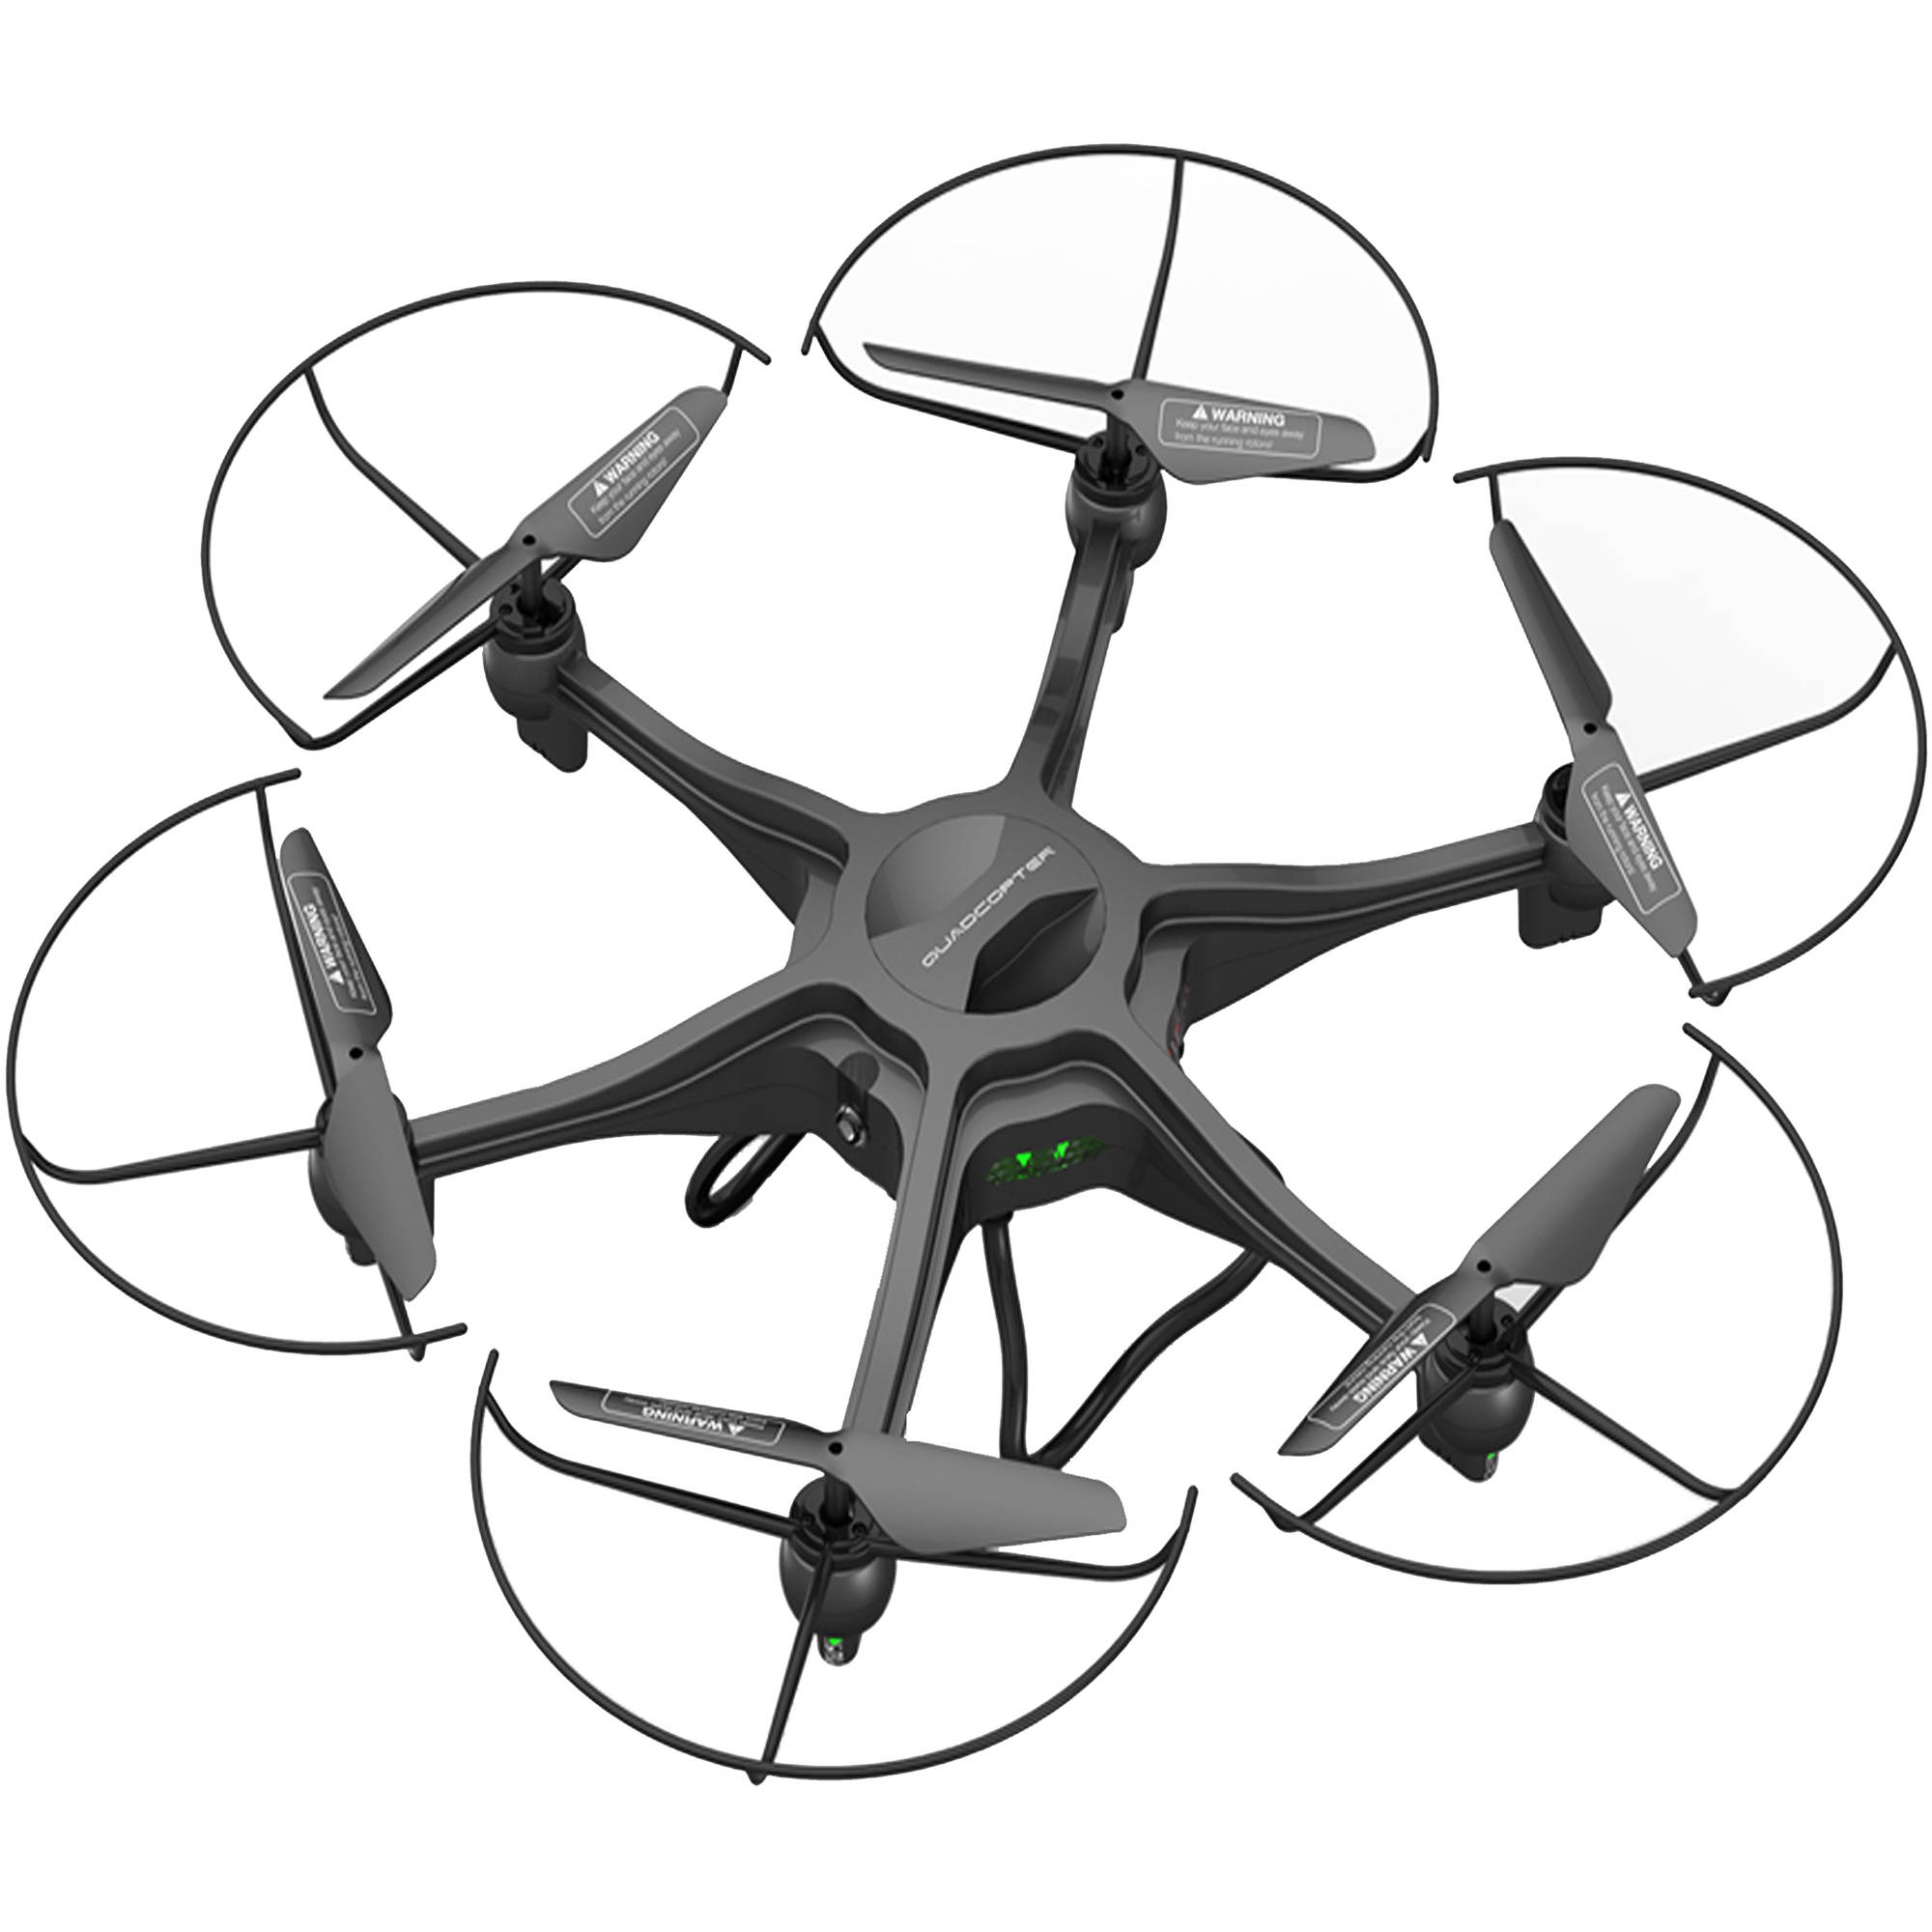 Force Flyers Adventurer 47 cm Motion Control Drone with WiFi Camera